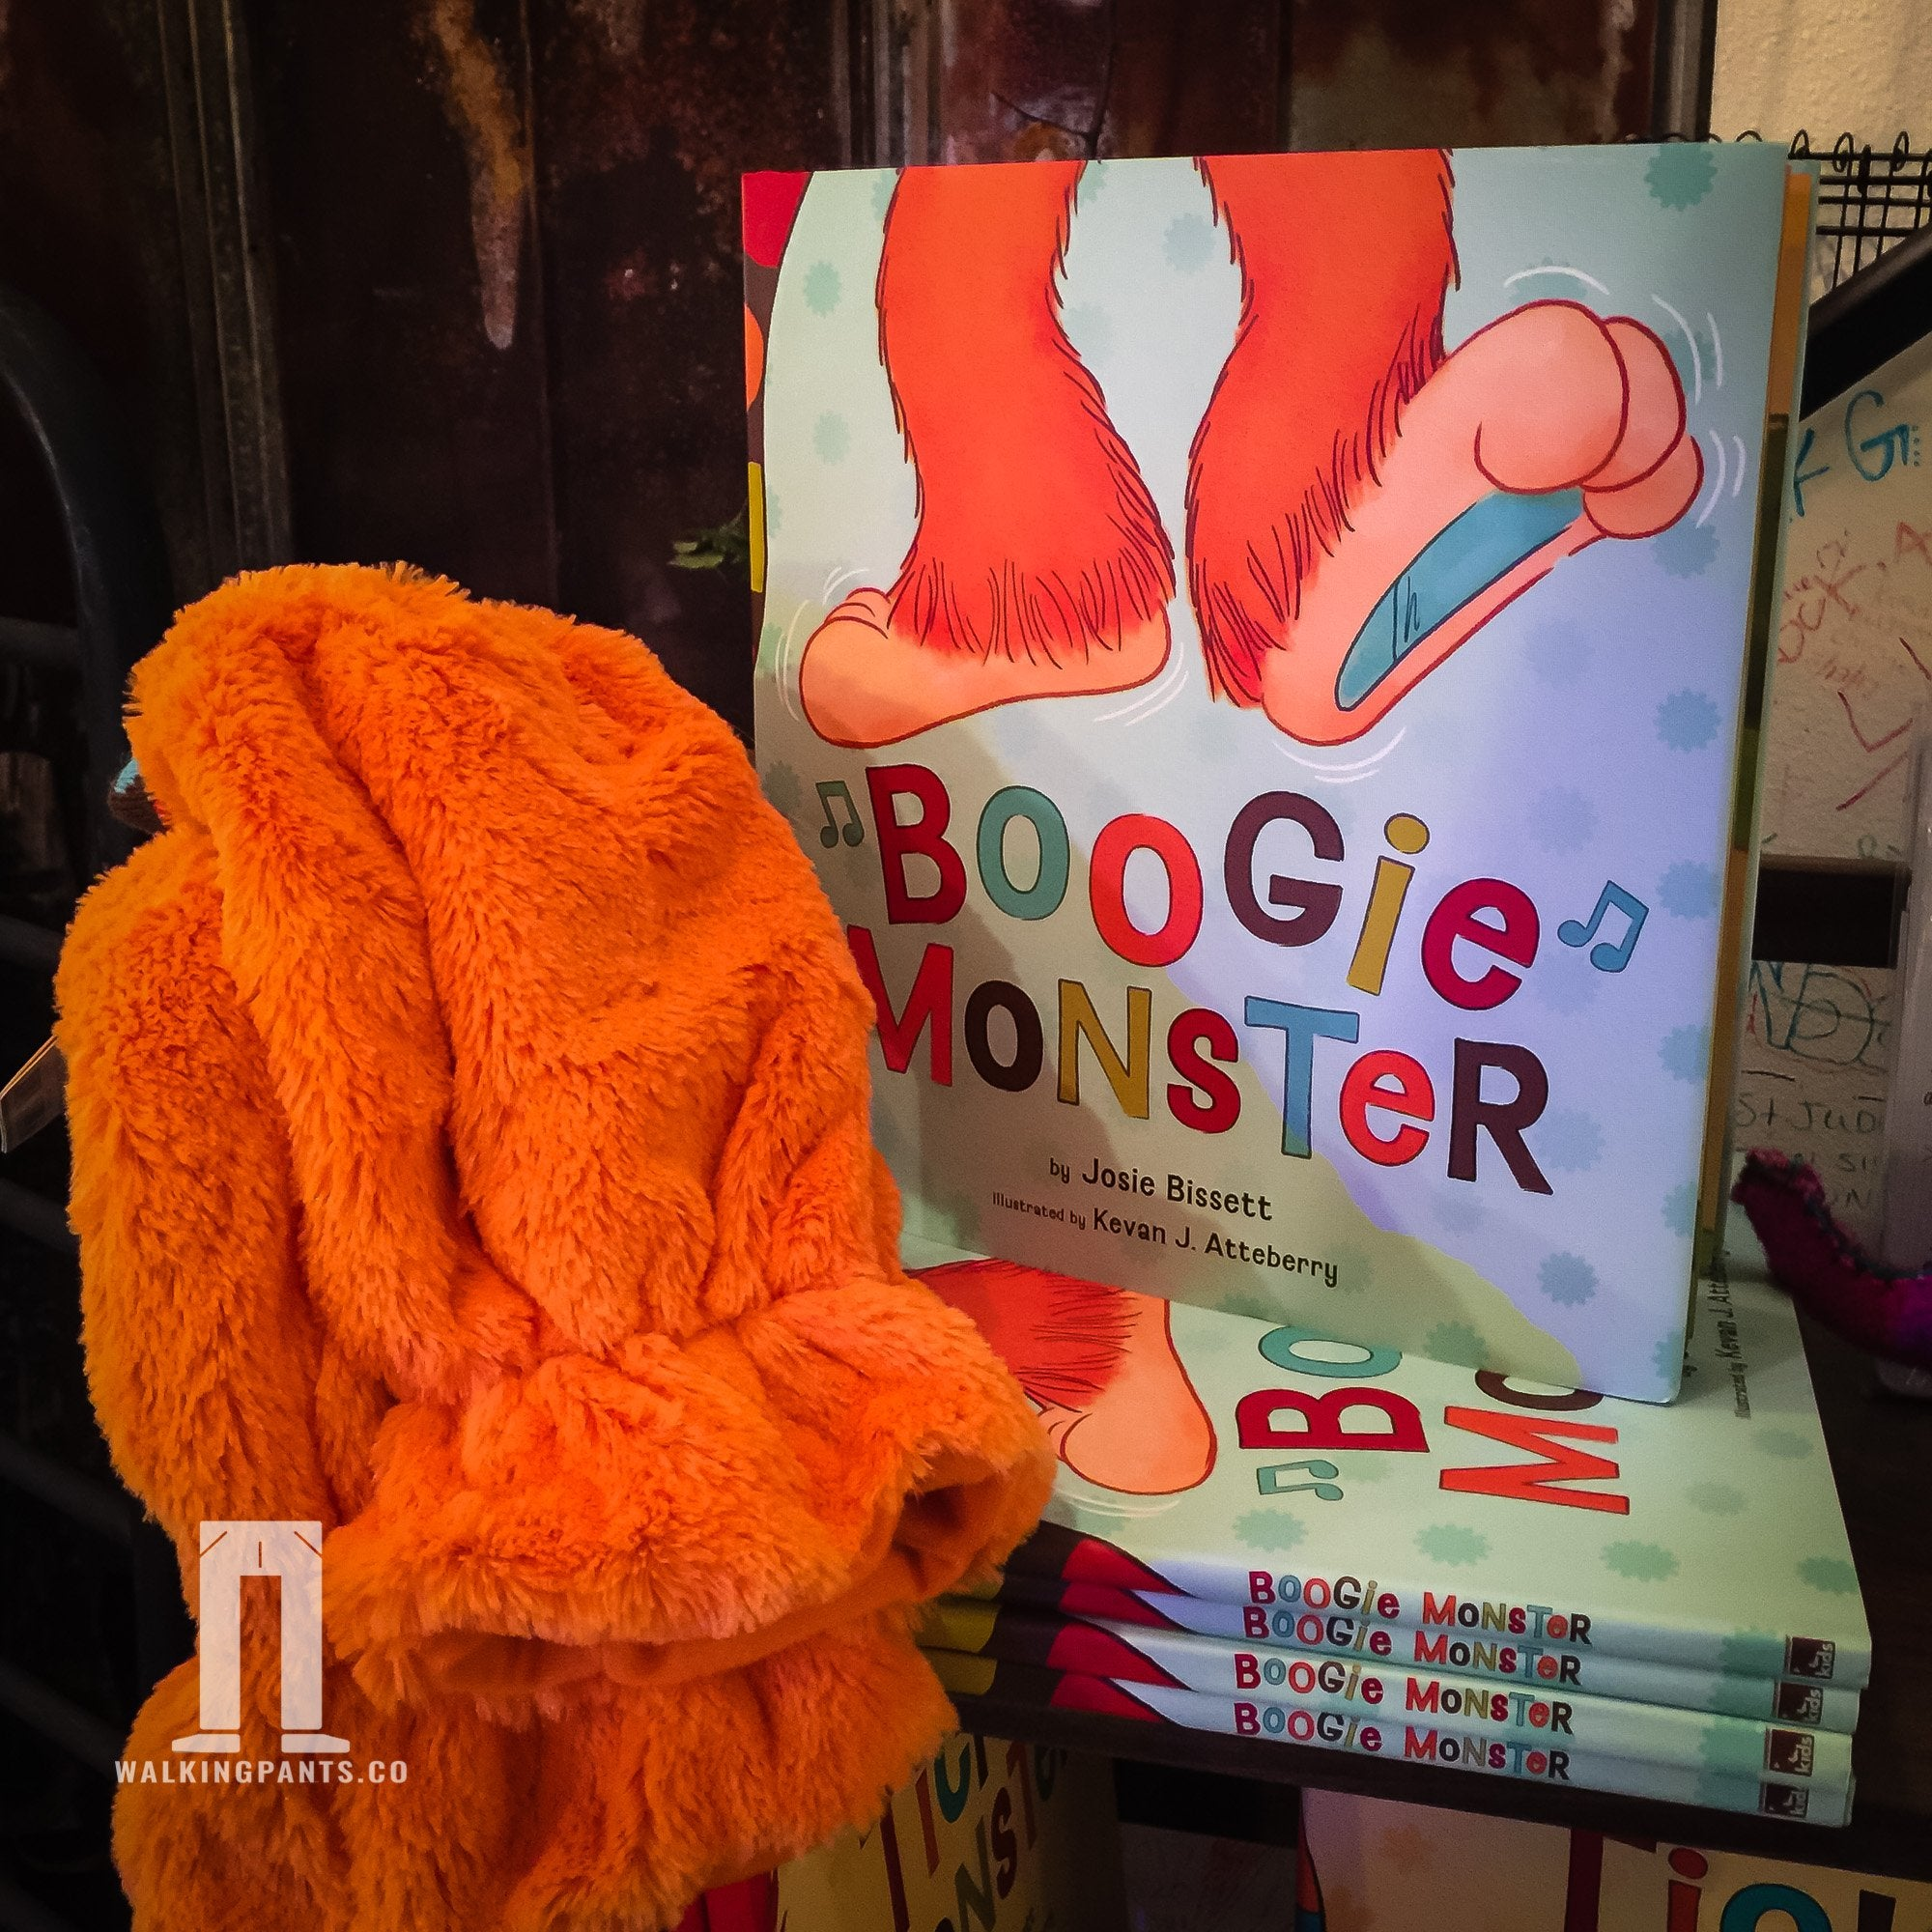 Buy Boogie Monster Book Gift Book from Walking Pants Curiosities, the Most un-General Gift Store in Downtown Memphis, Tennessee!